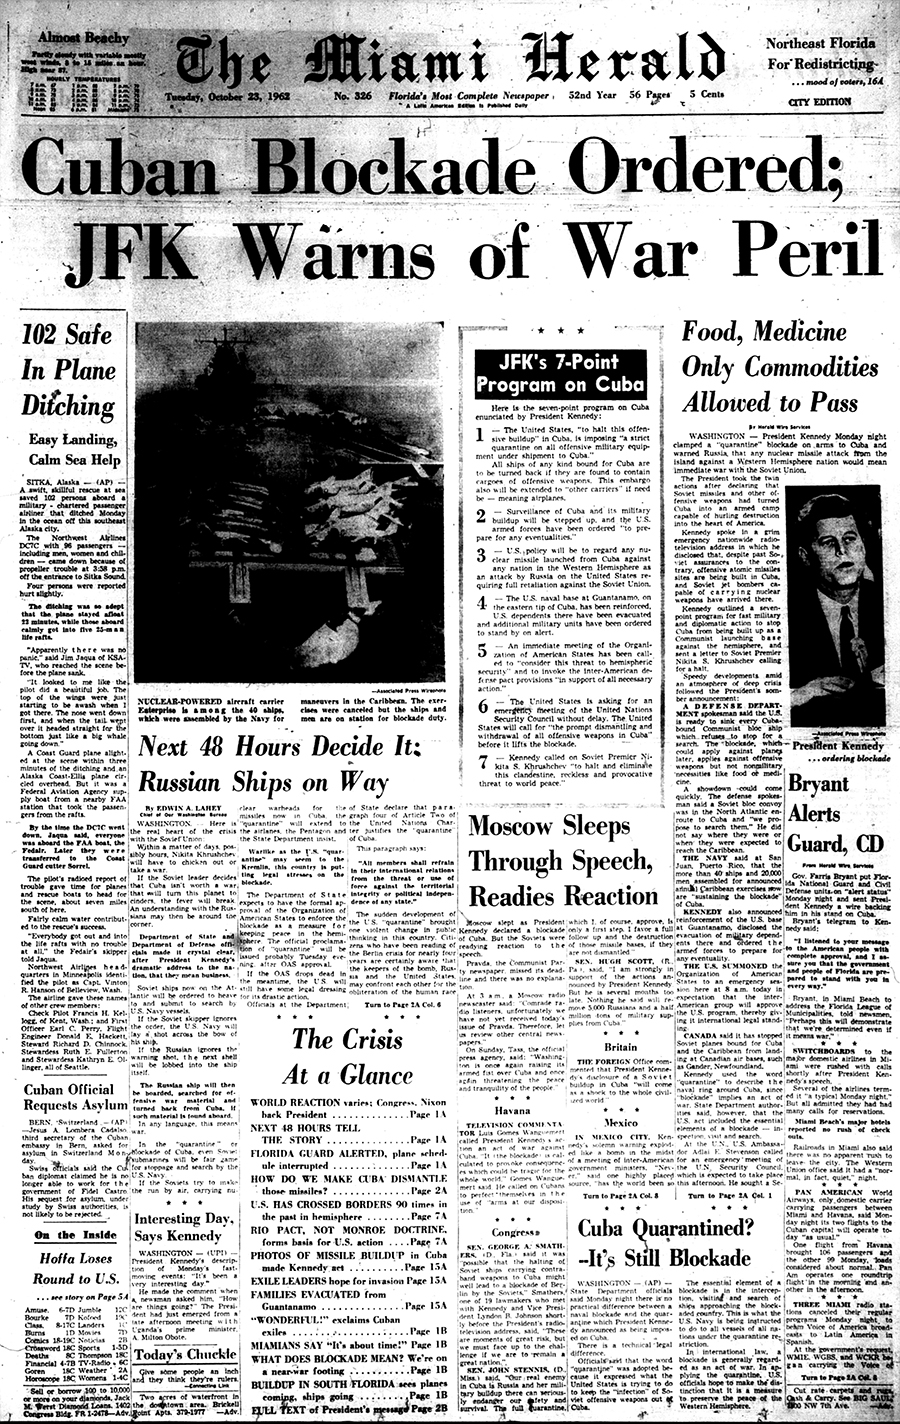 The front page of the Miami Herald on Tuesday, Oct. 23, 1962. // Miami Herald file